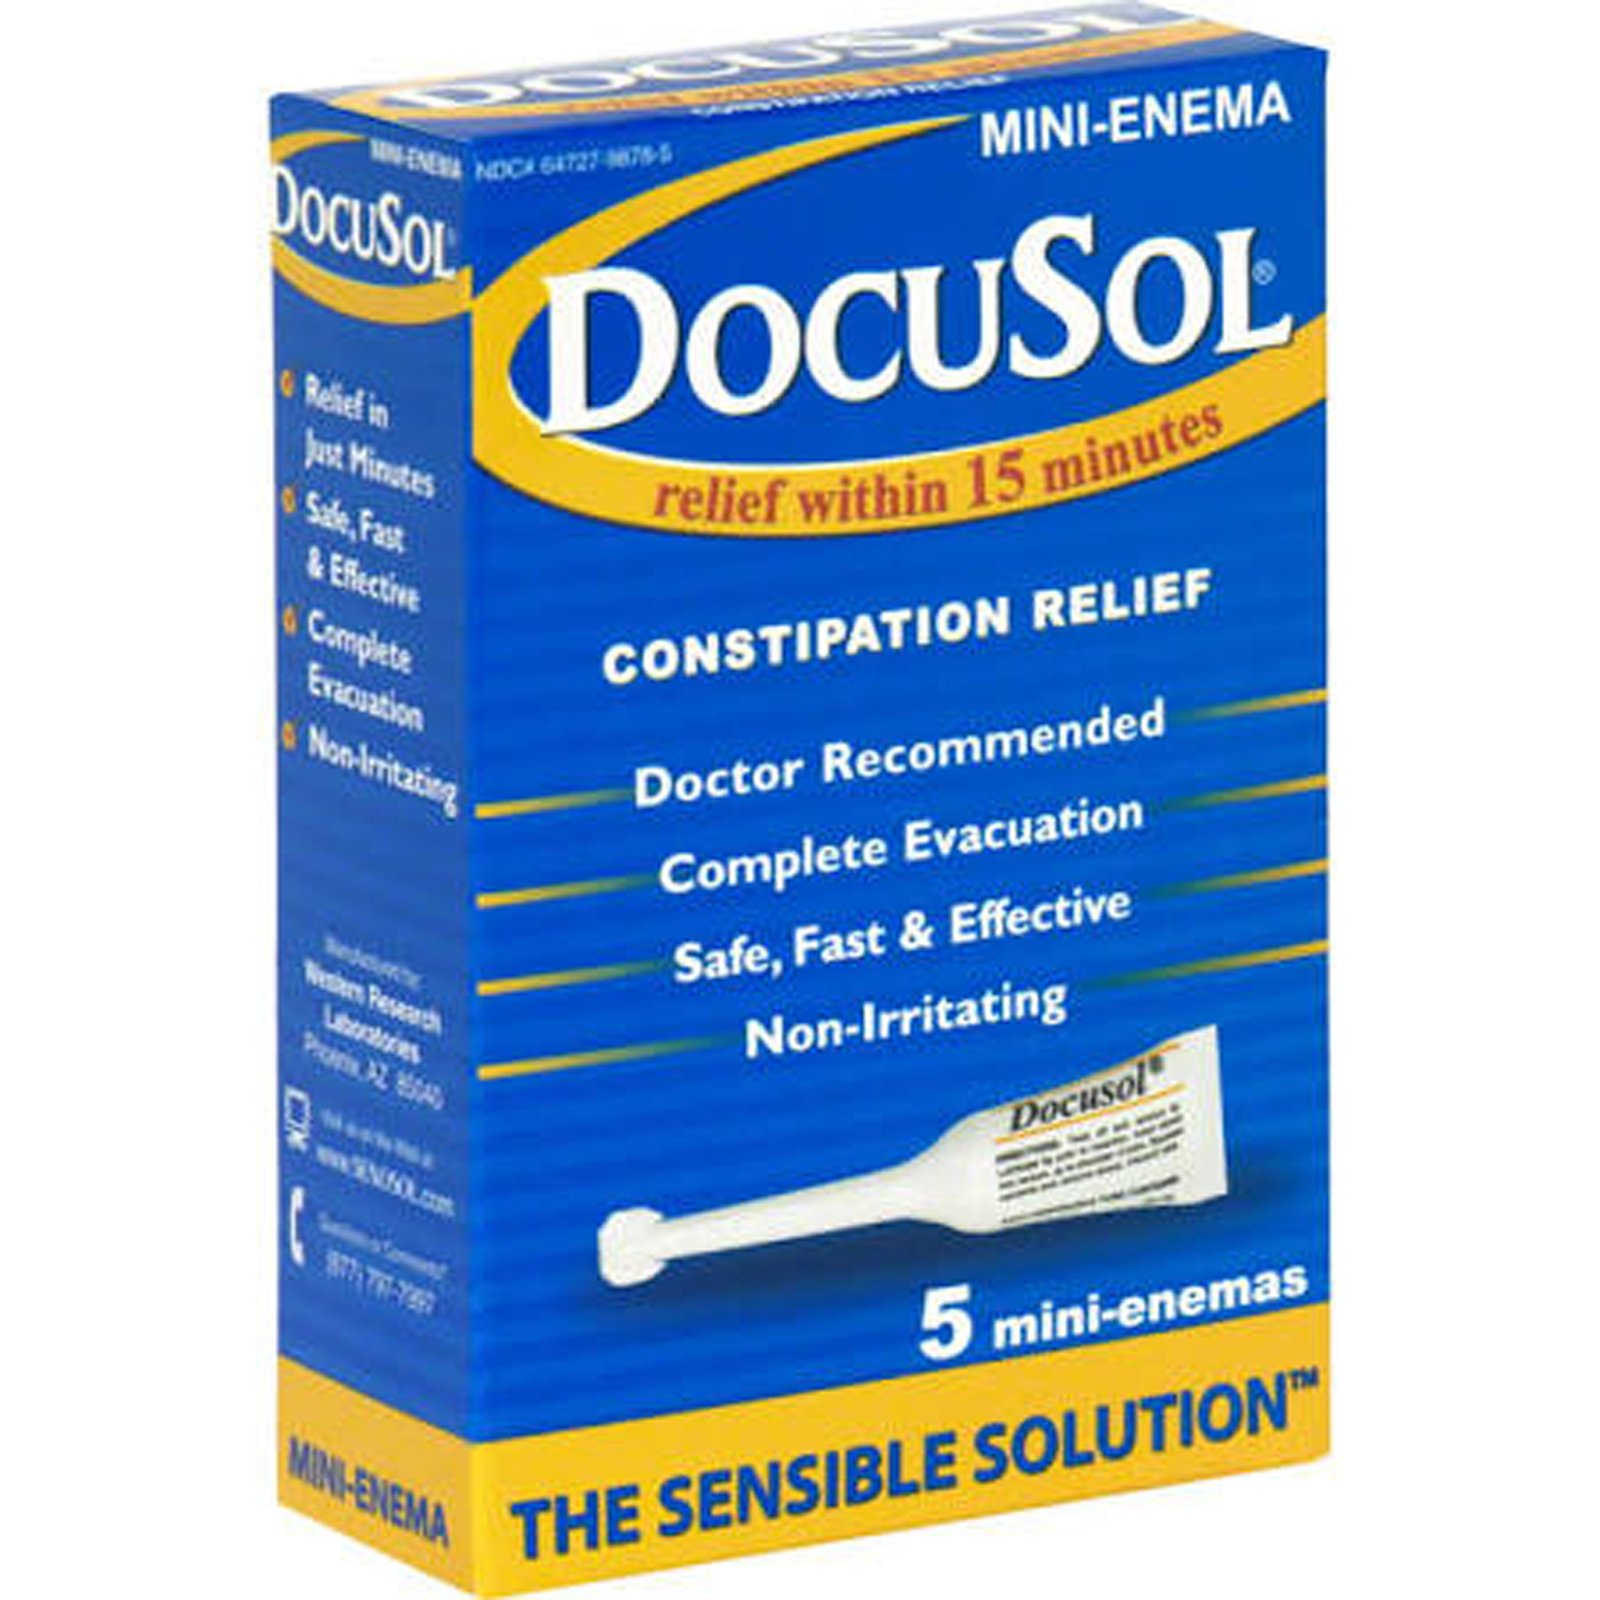 Docusol Mini Enemas - 5 ct, Pack of 3 by Docusol